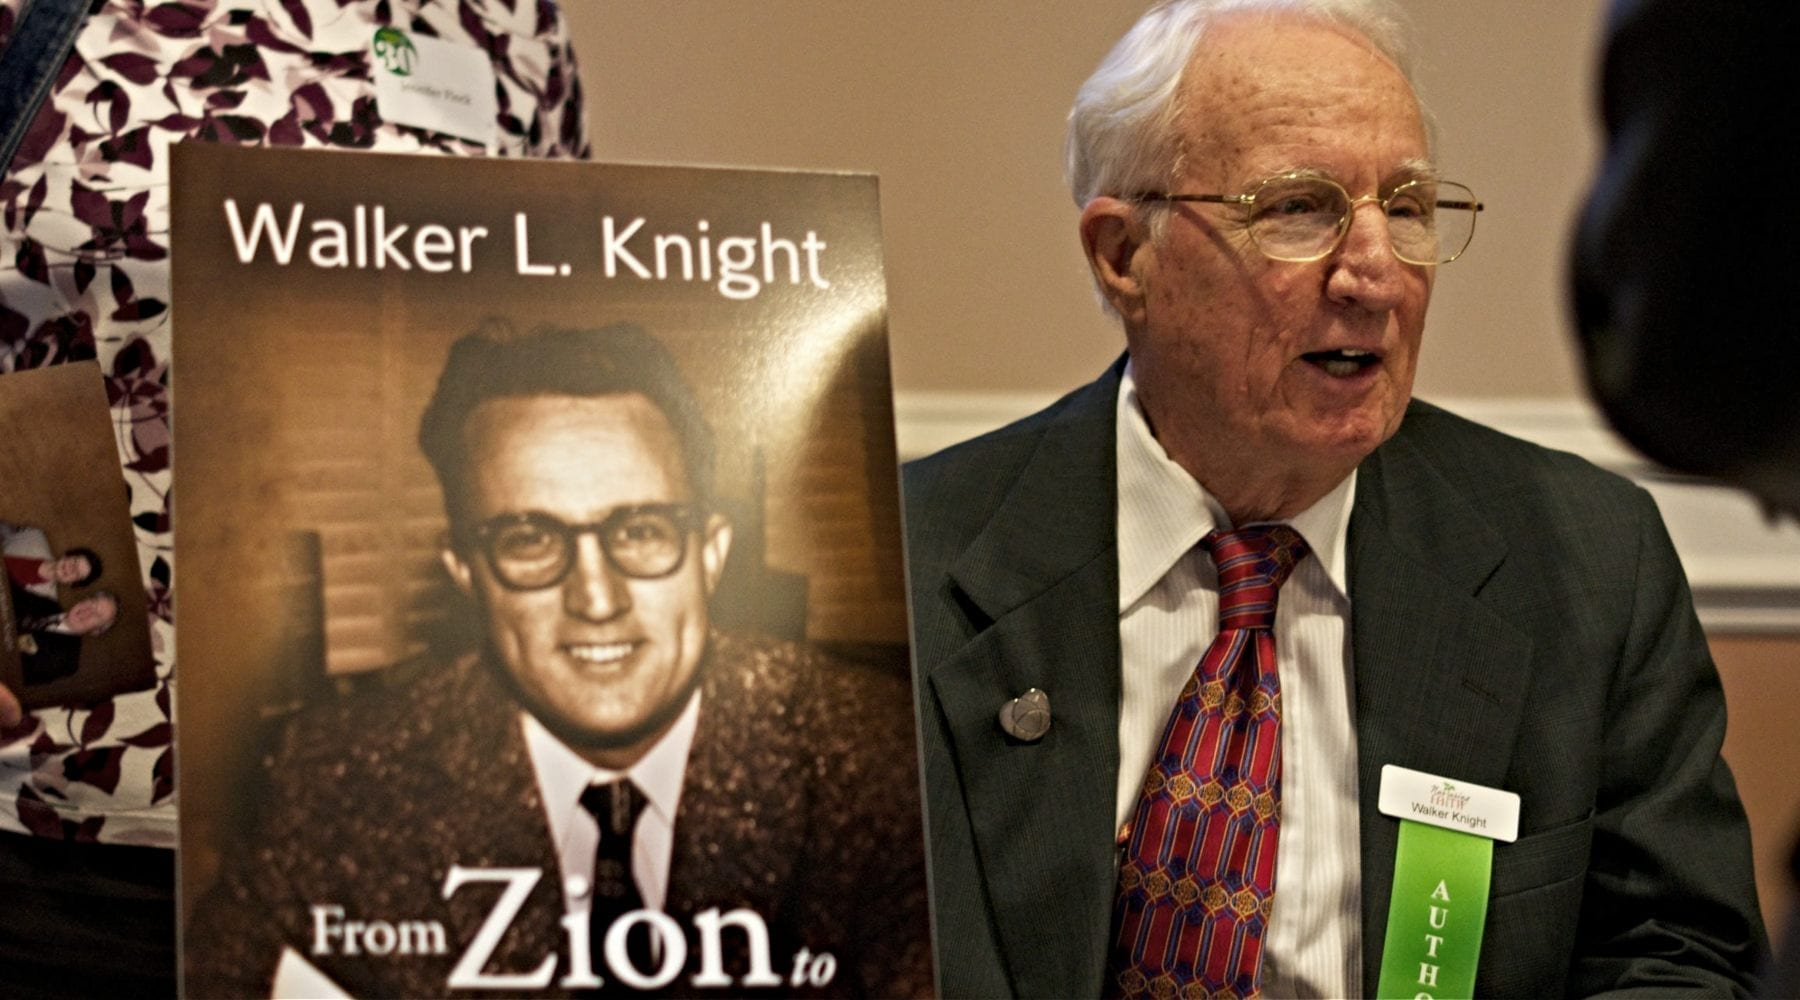 Walker Knight: Friend, Mentor and Voice for Peace and Justice